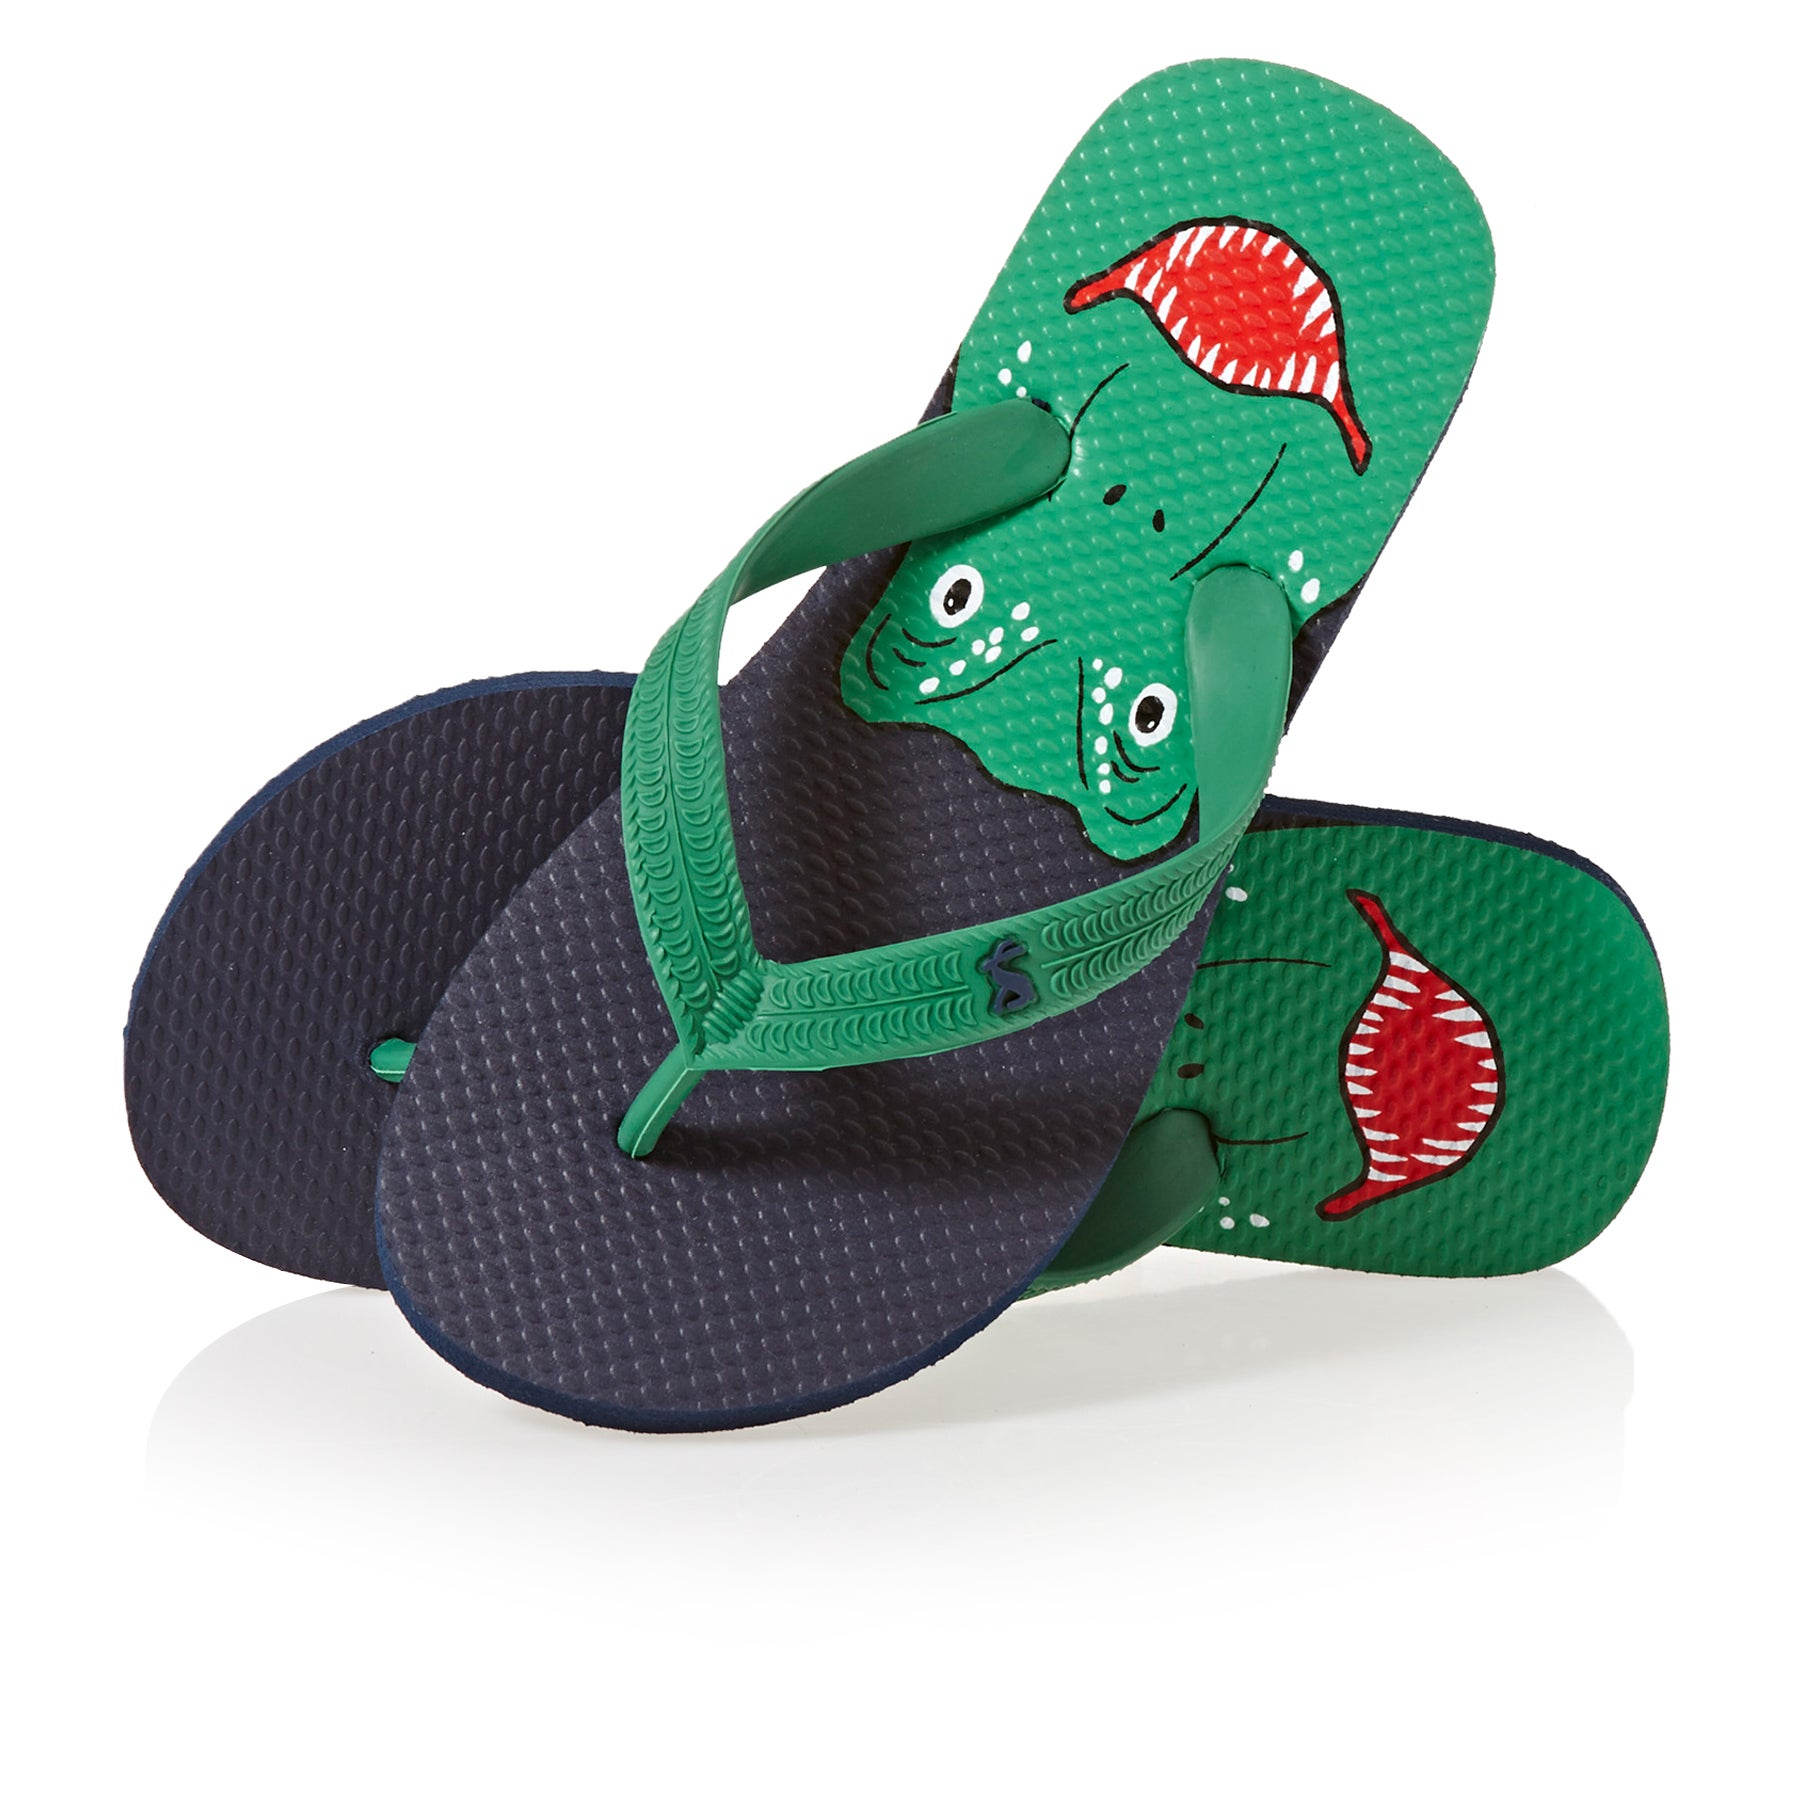 Joules Printed Boys Sandals - Navy Dinosaur